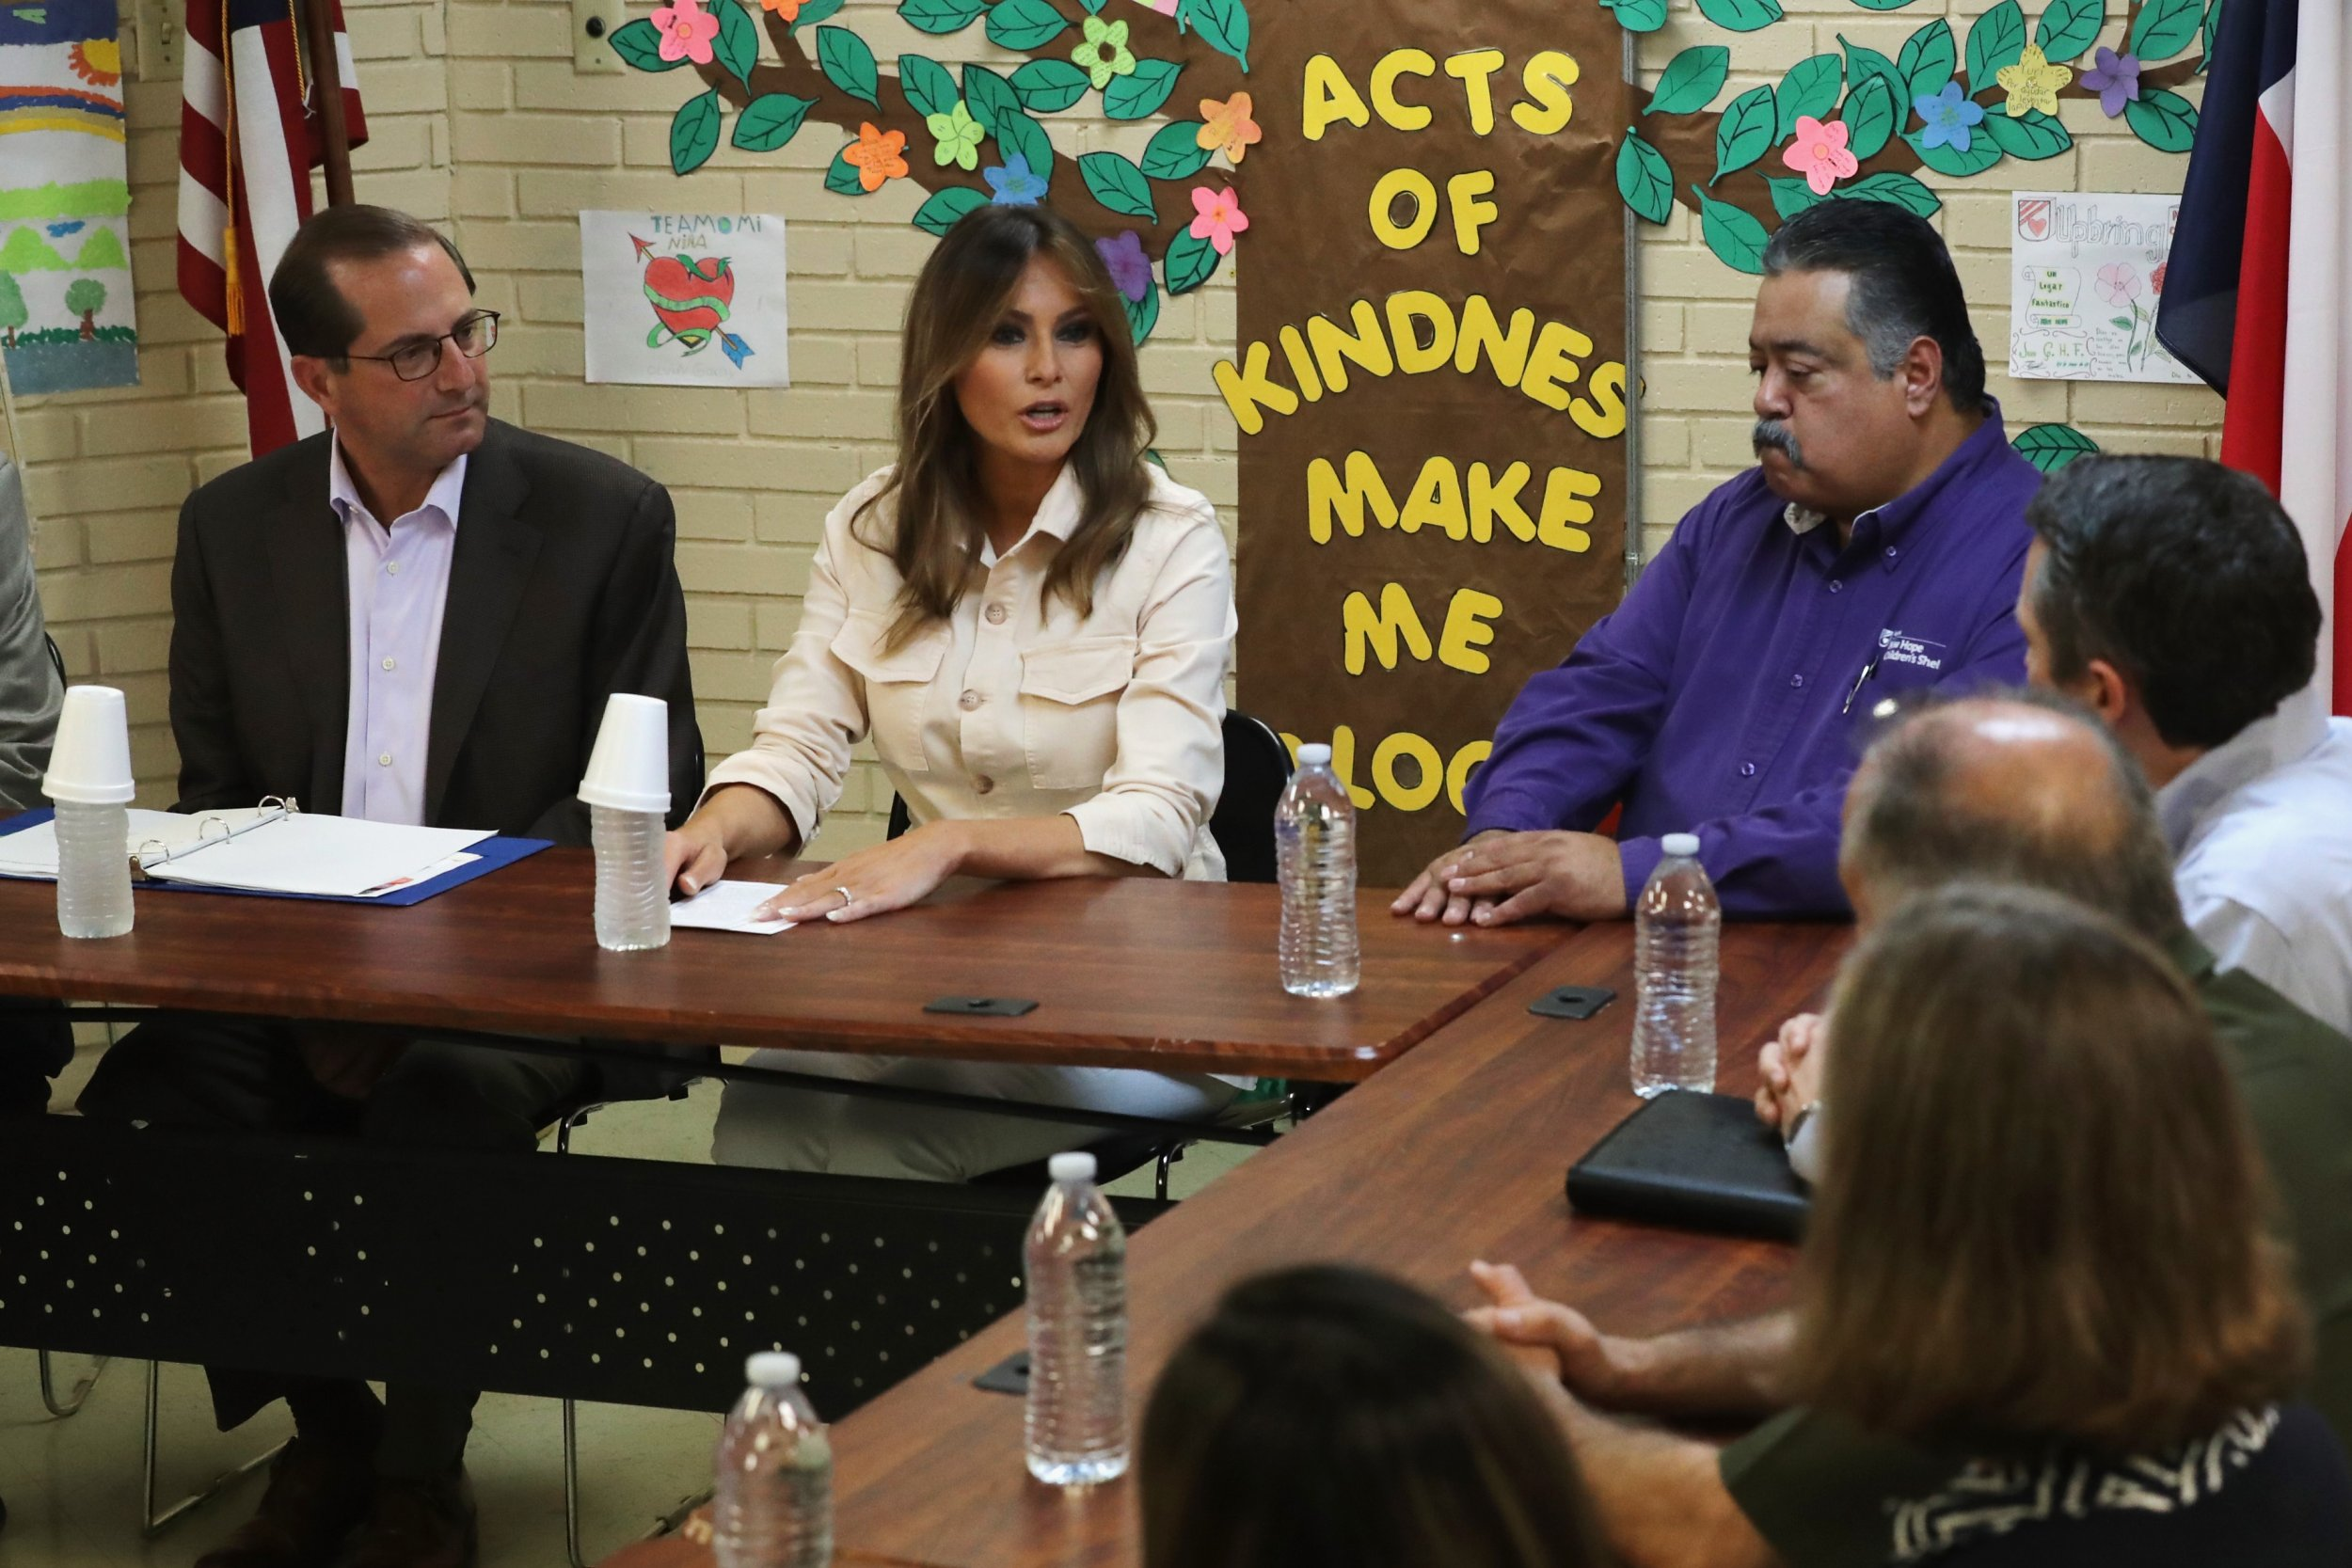 Trump Round Table.Melania Trump Visits Immigrant Children At Border After Telling